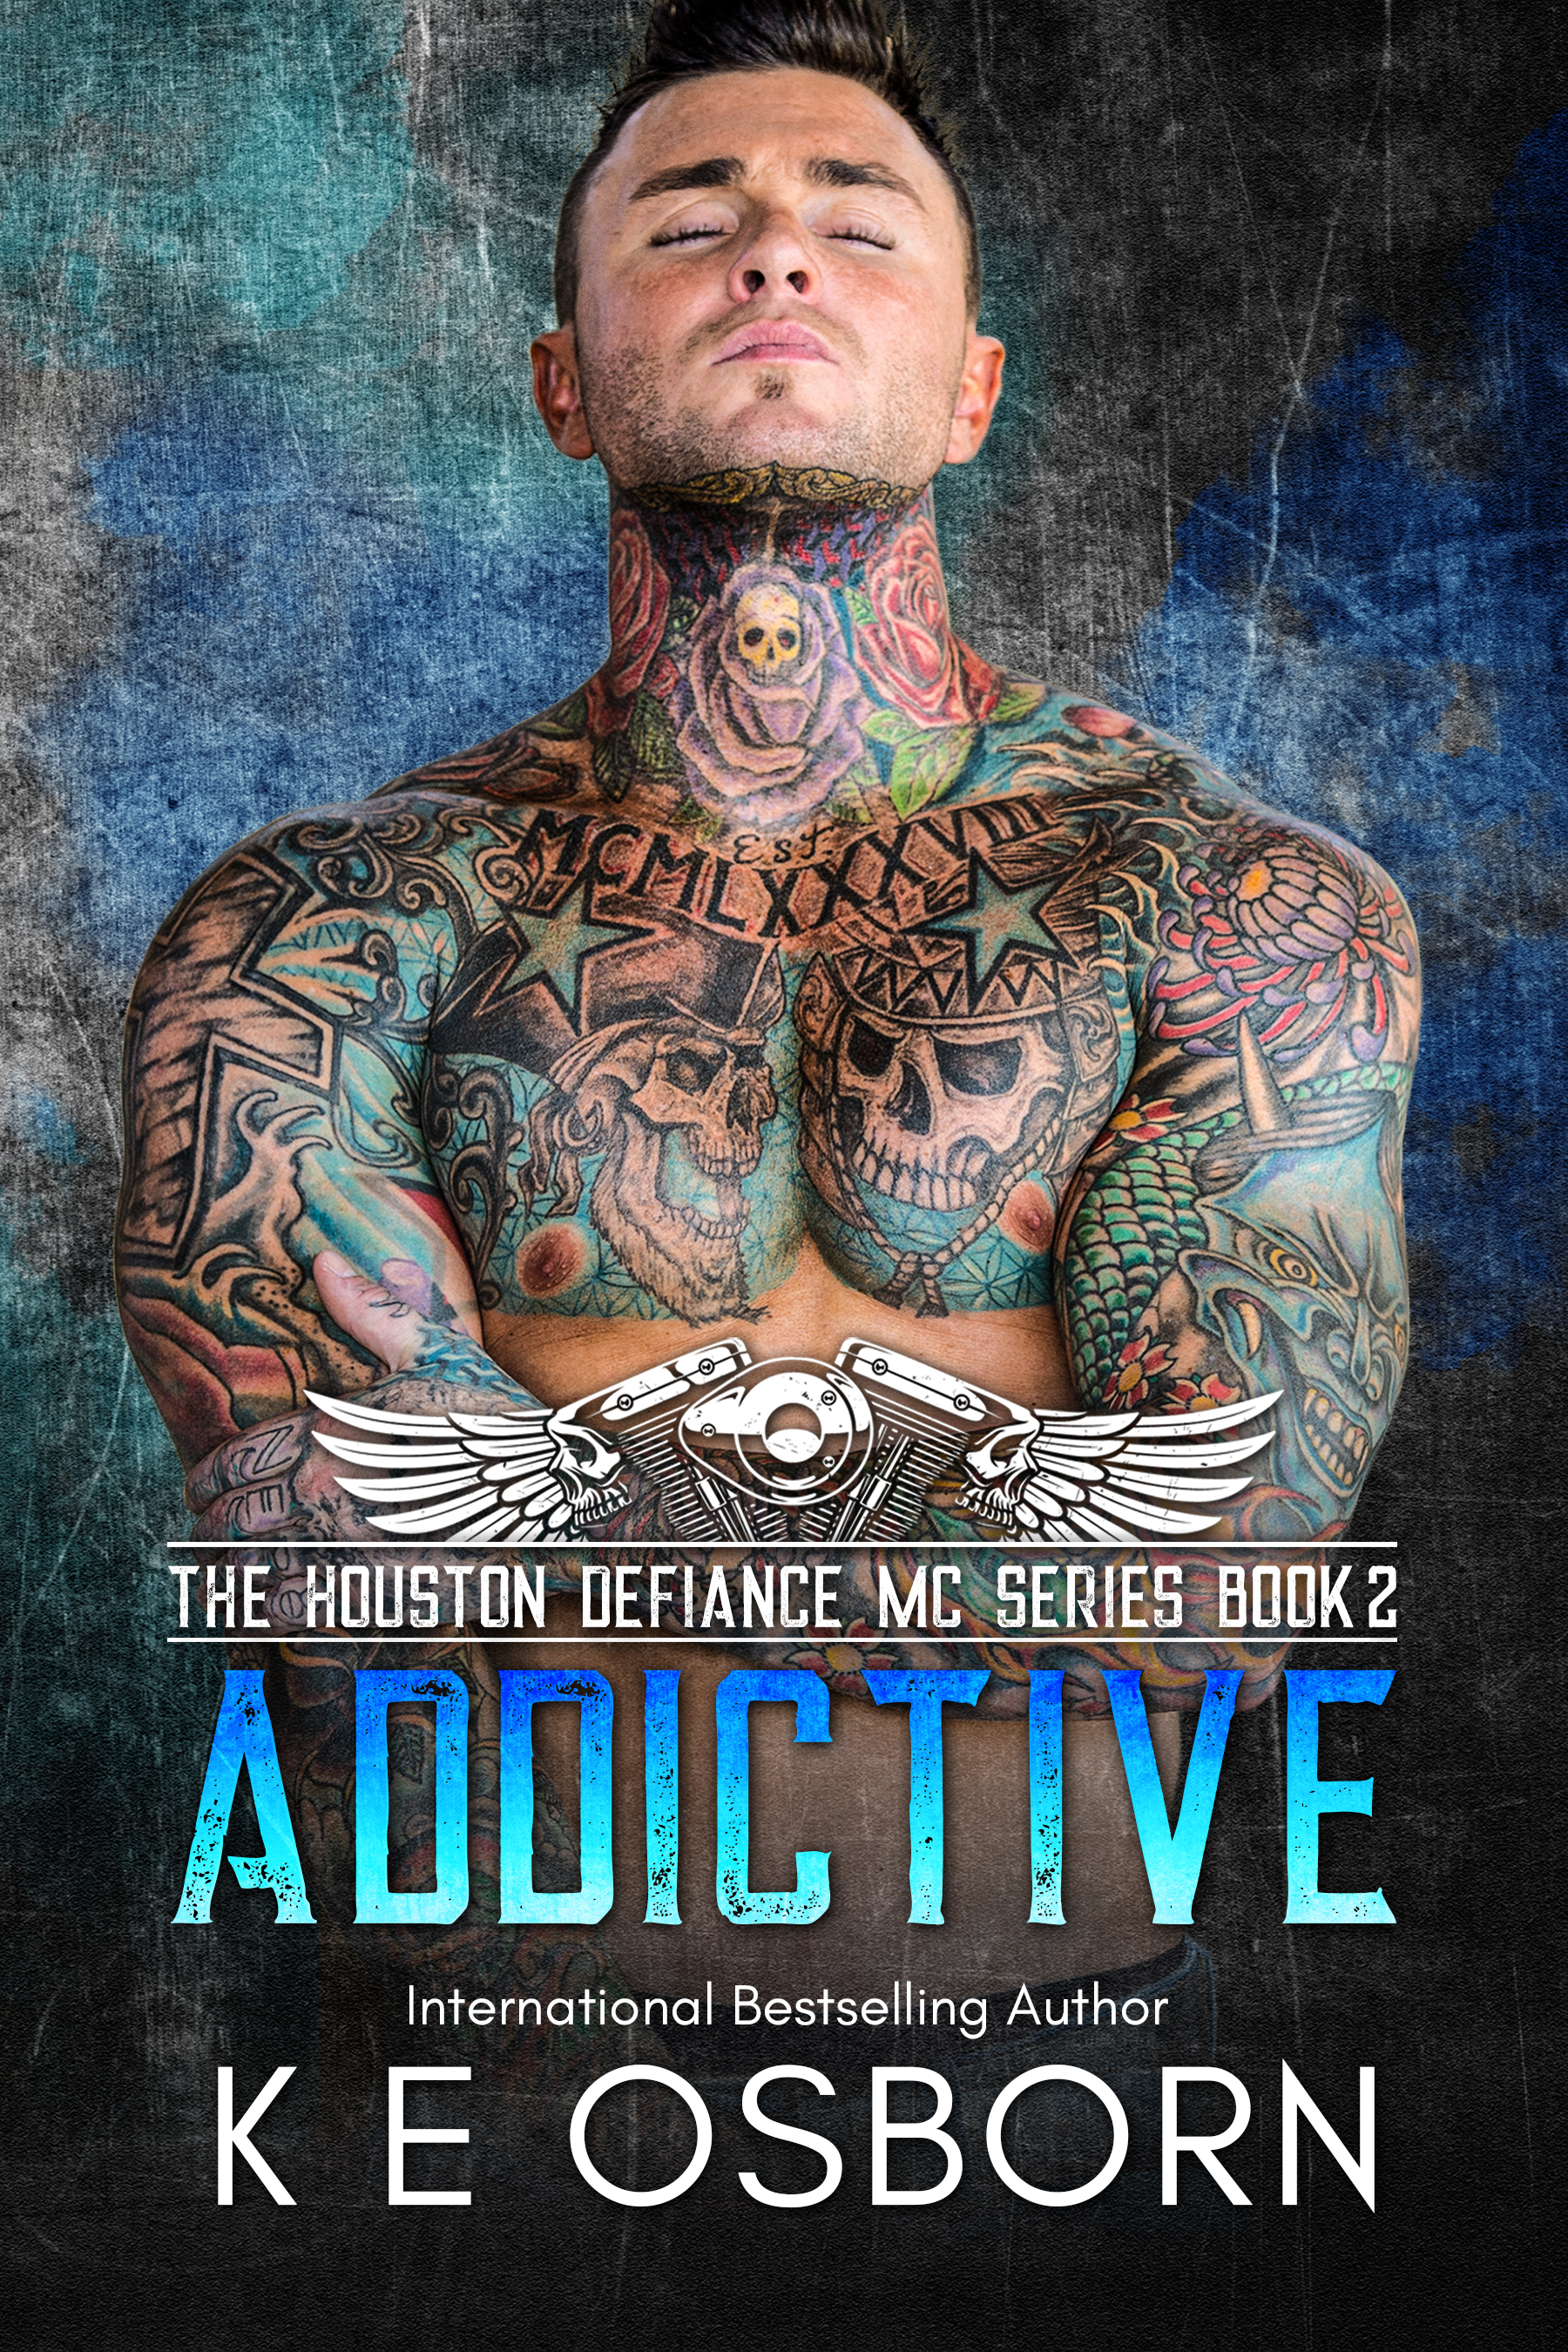 addictive-ebook-1